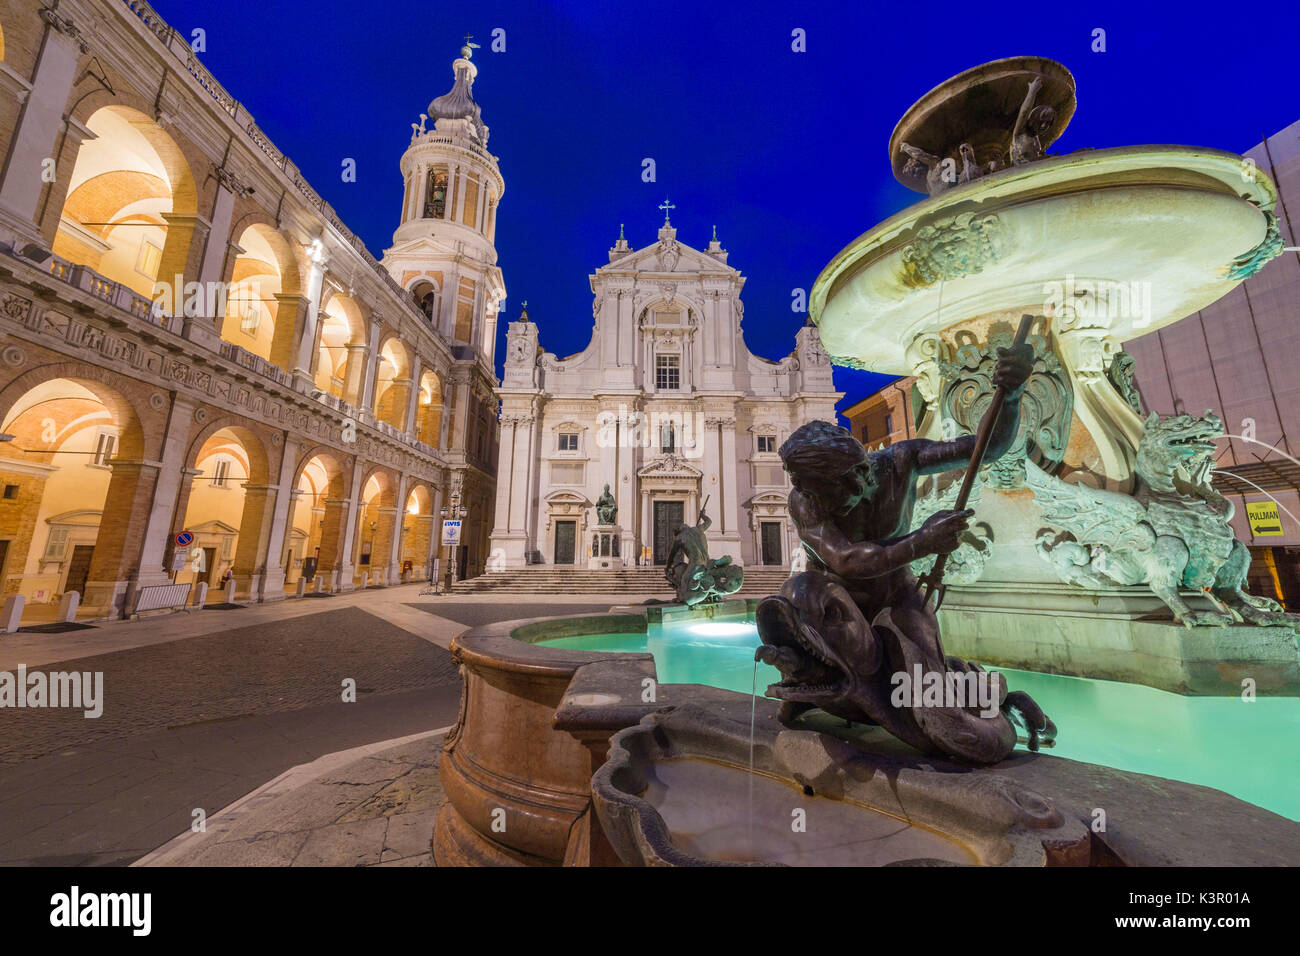 Night view of the Basilica of the Holy House and fountain decorated with statues Loreto Province of Ancona Marche Italy Europe - Stock Image